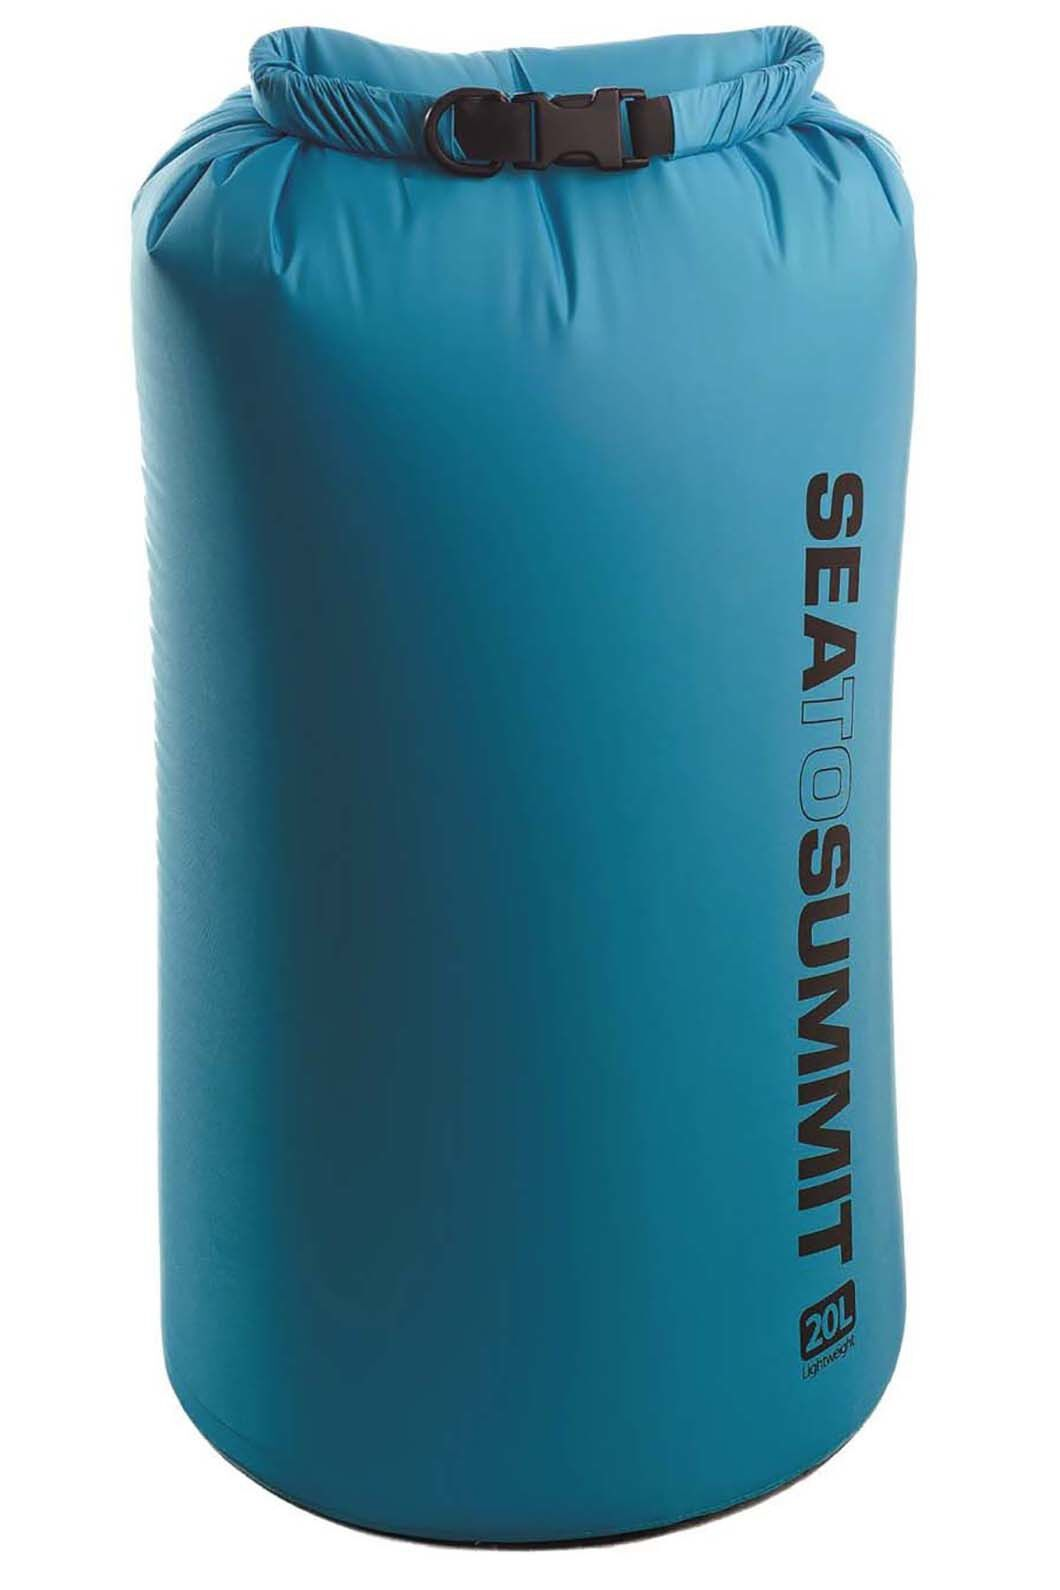 Sea to Summit 20L Light Dry Sack, None, hi-res